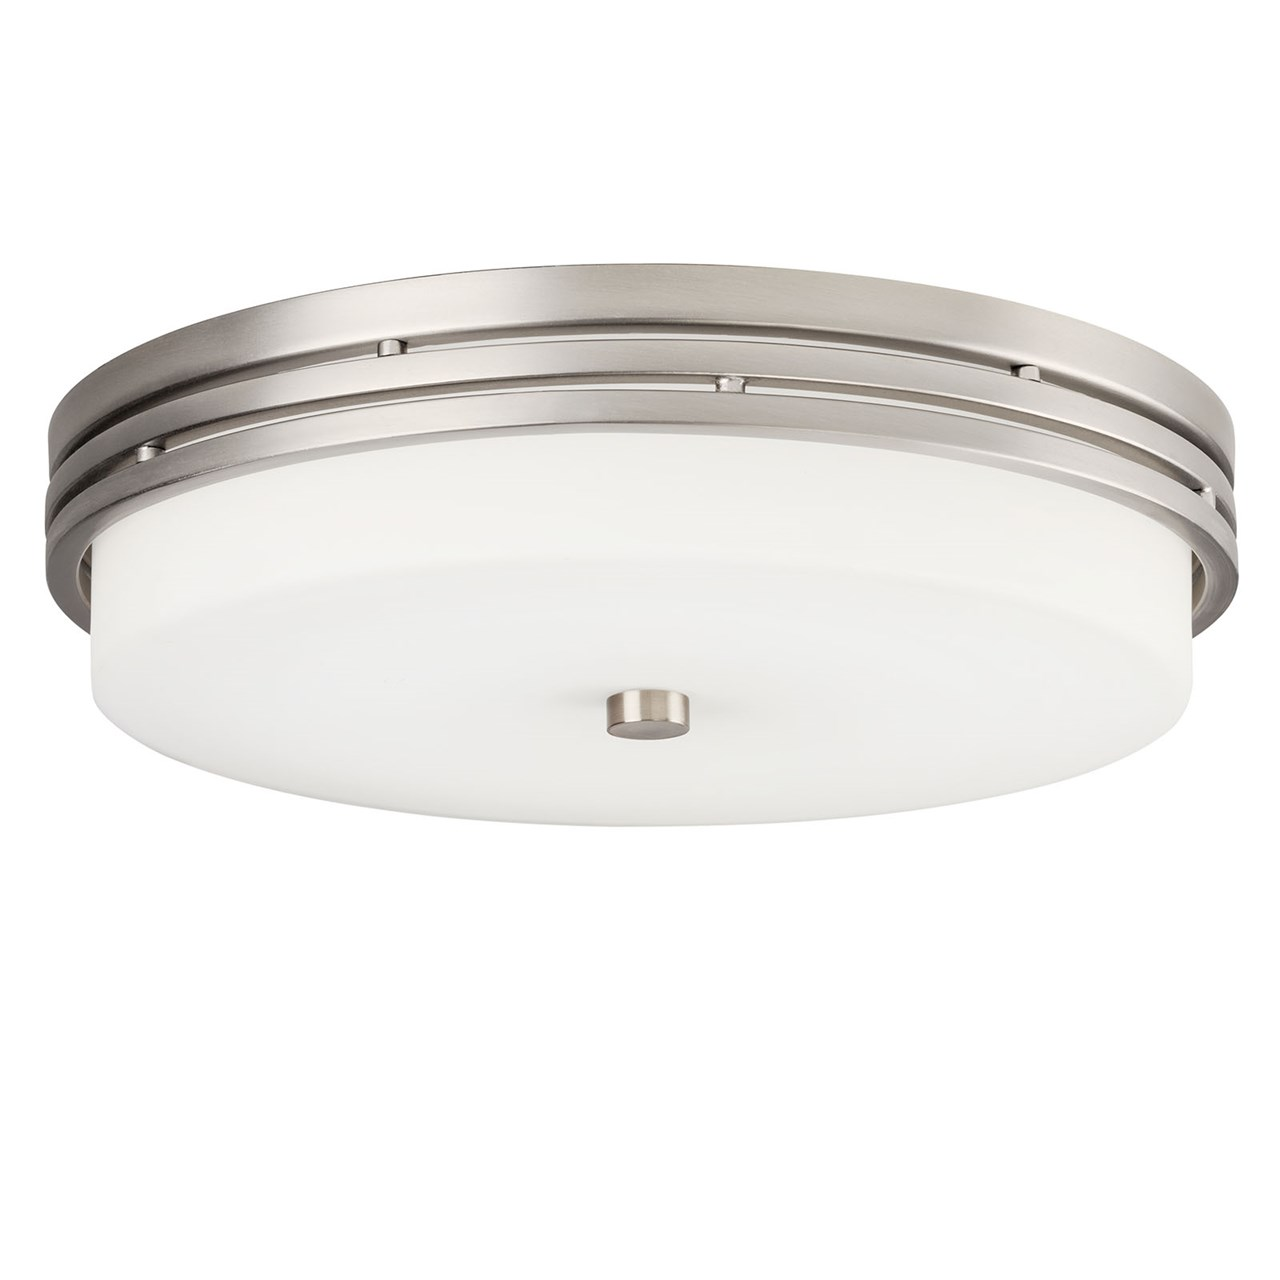 "Ceiling Space 14"" LED Flush Mount Brushed Nickel"